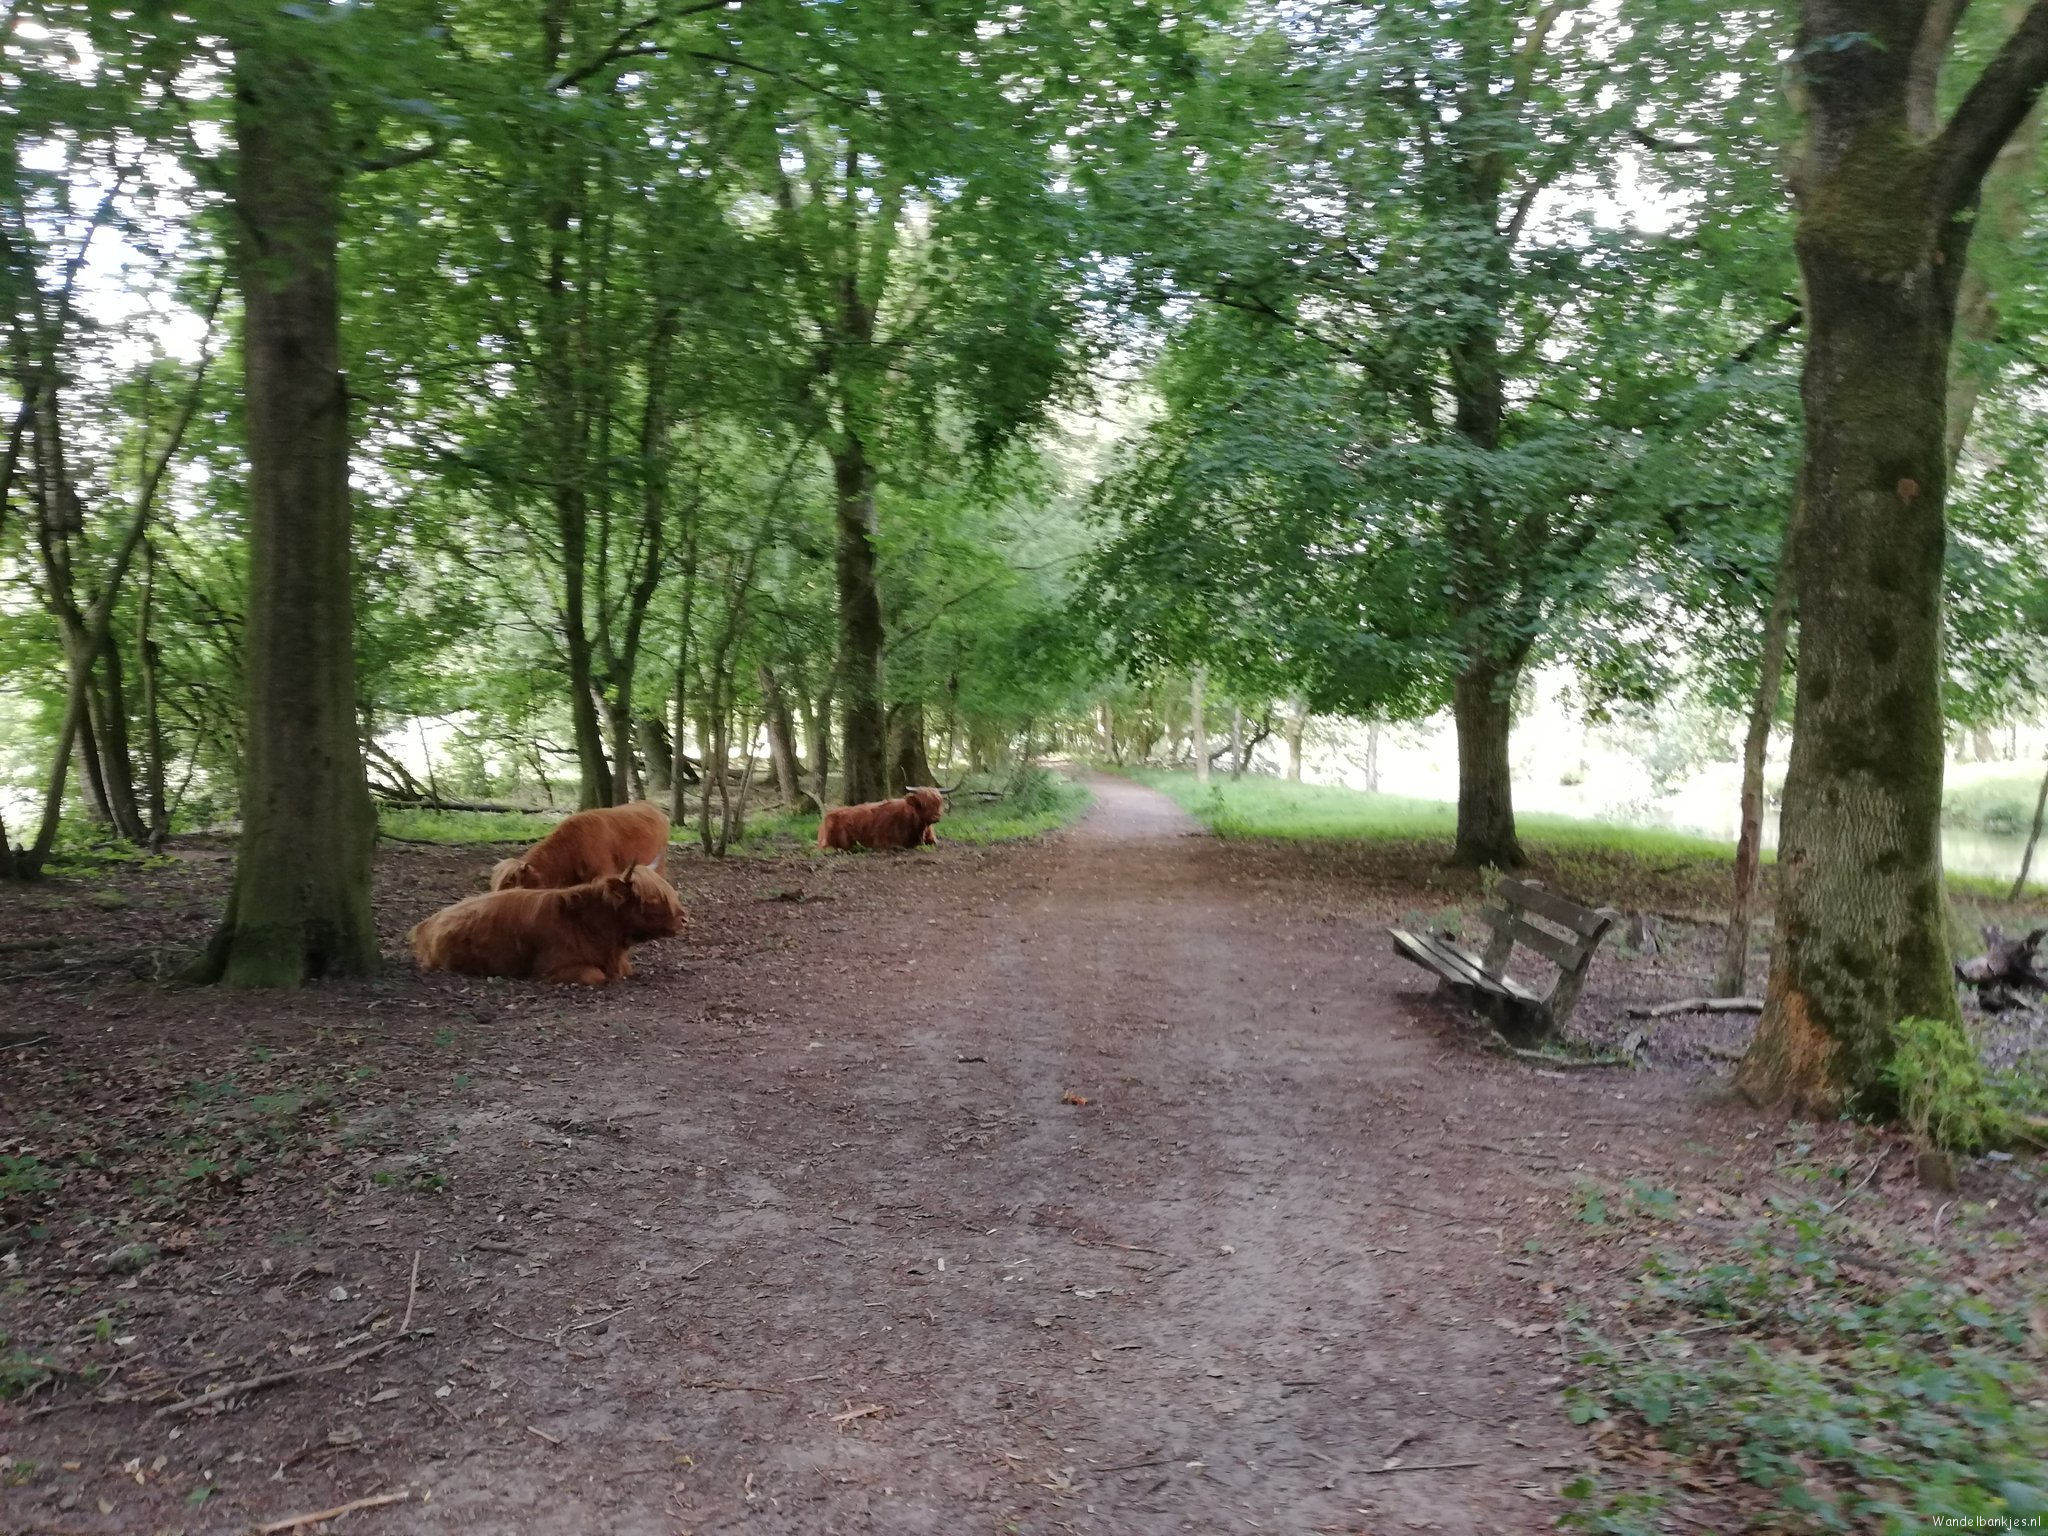 rt-walburgism-monday-morning-walk-city-park-gem_groningen-scottish-highlanders-and-bench-walking benches-wanderlust-https-t-co-imh